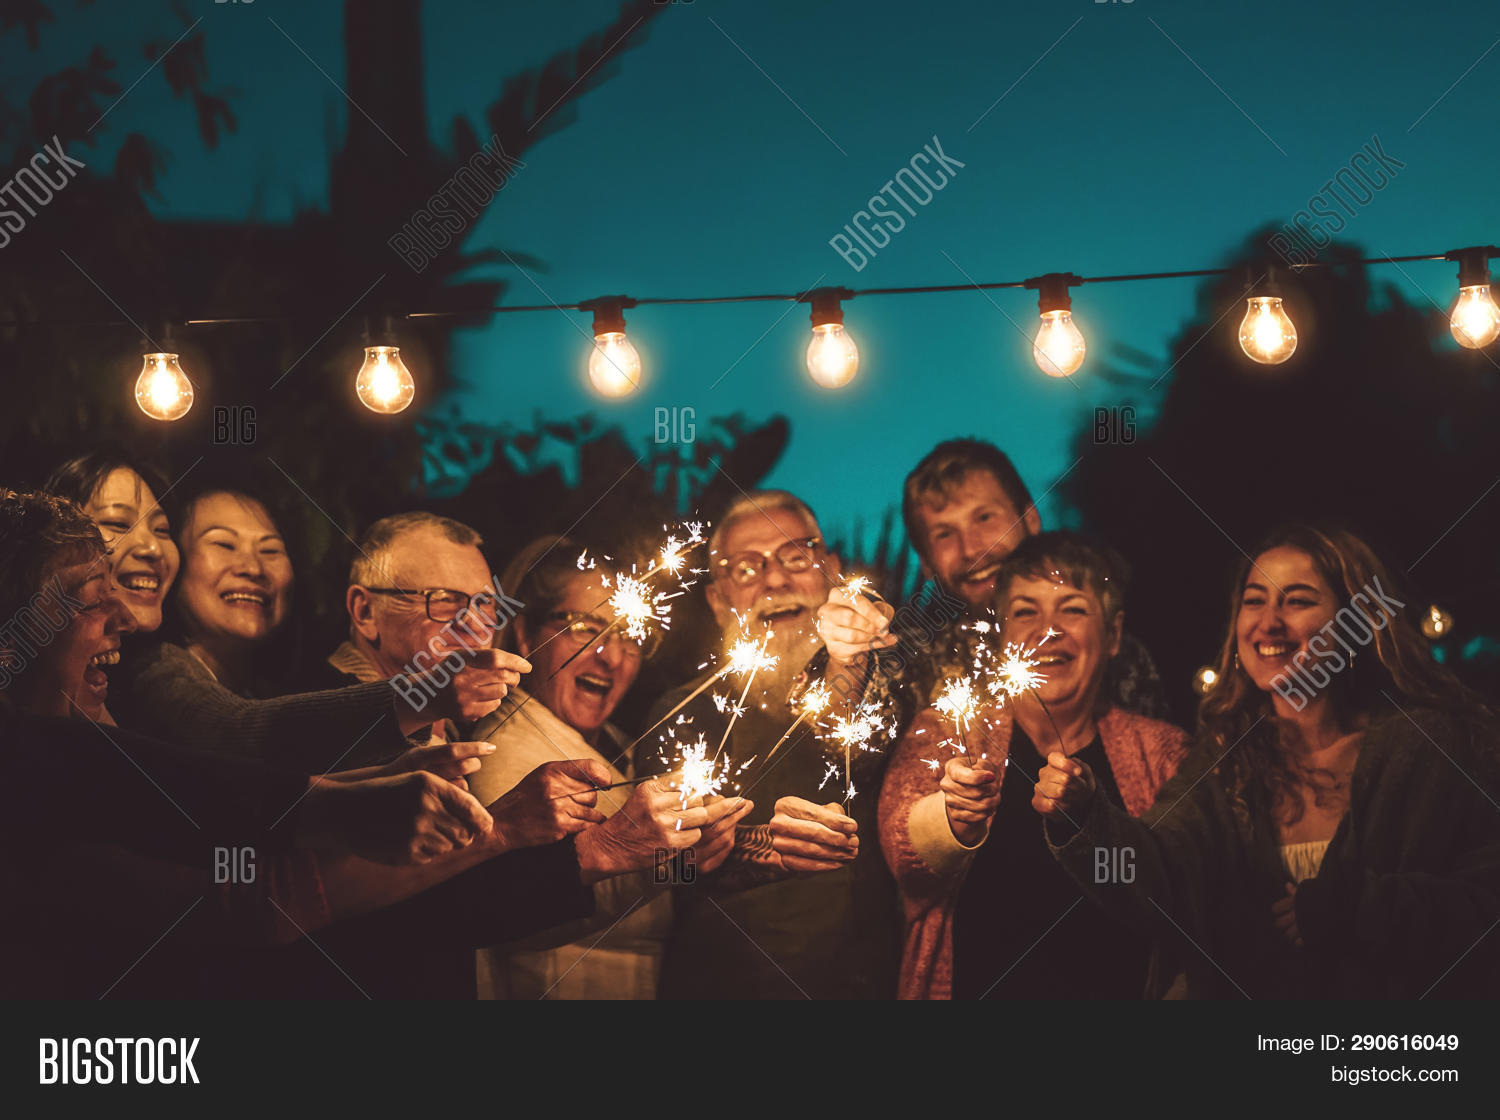 2020,adult,aged,asian,bar,birthday,celebrate,celebration,chinese,crowd,dinner,elderly,eve,family,feast,friends,friendship,fun,gathering,group,happy,hipster,holiday,home,laughing,lifestyle,light,men,millenial,millennial,multiracial,new,night,older,party,pensioner,people,restaurant,retirement,senior,smiling,social,spark,sparkler,summer,weekend,women,year,young,youth